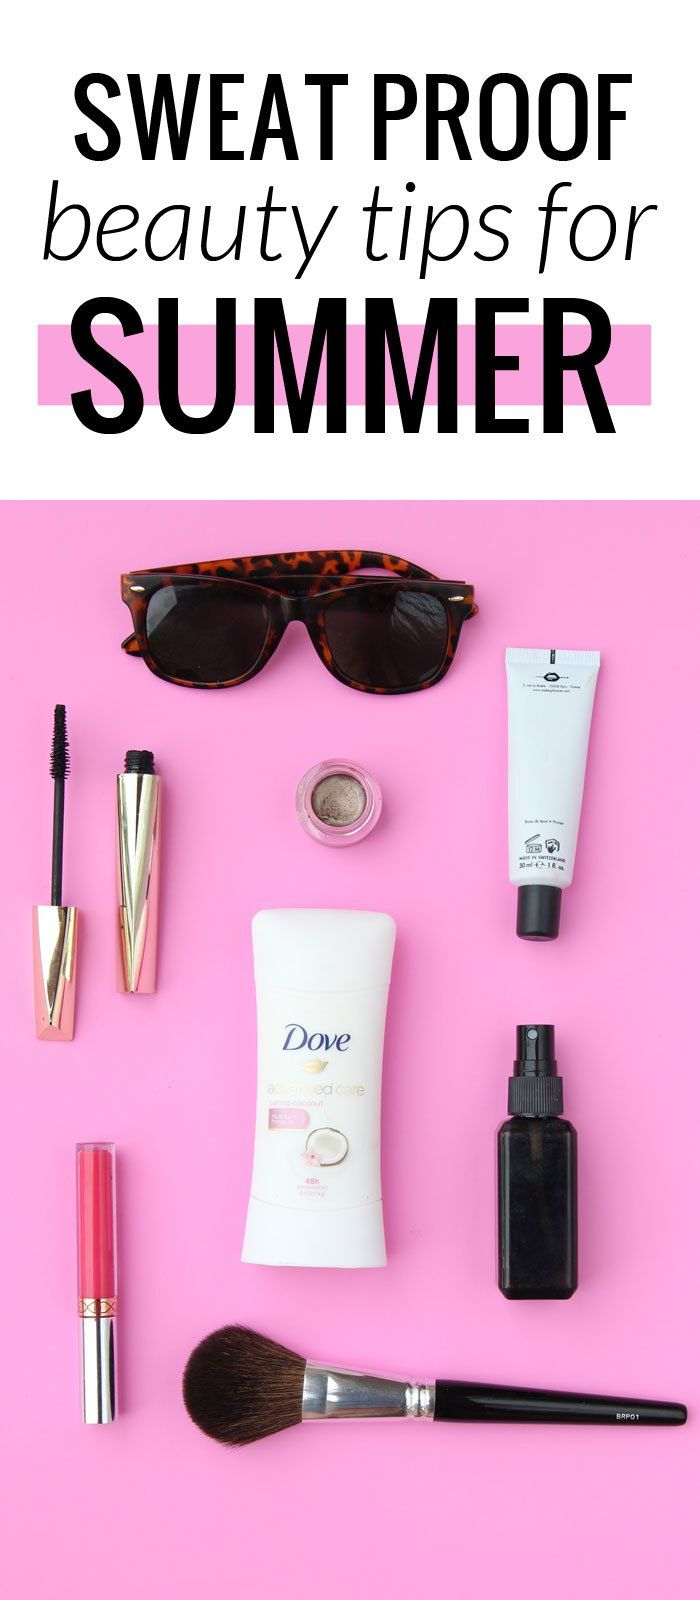 Sweat proof beauty tips for summer - keep dry, and help that makeup last longer! #EssentialUpgrade #DovePartner #pmgdove @dove